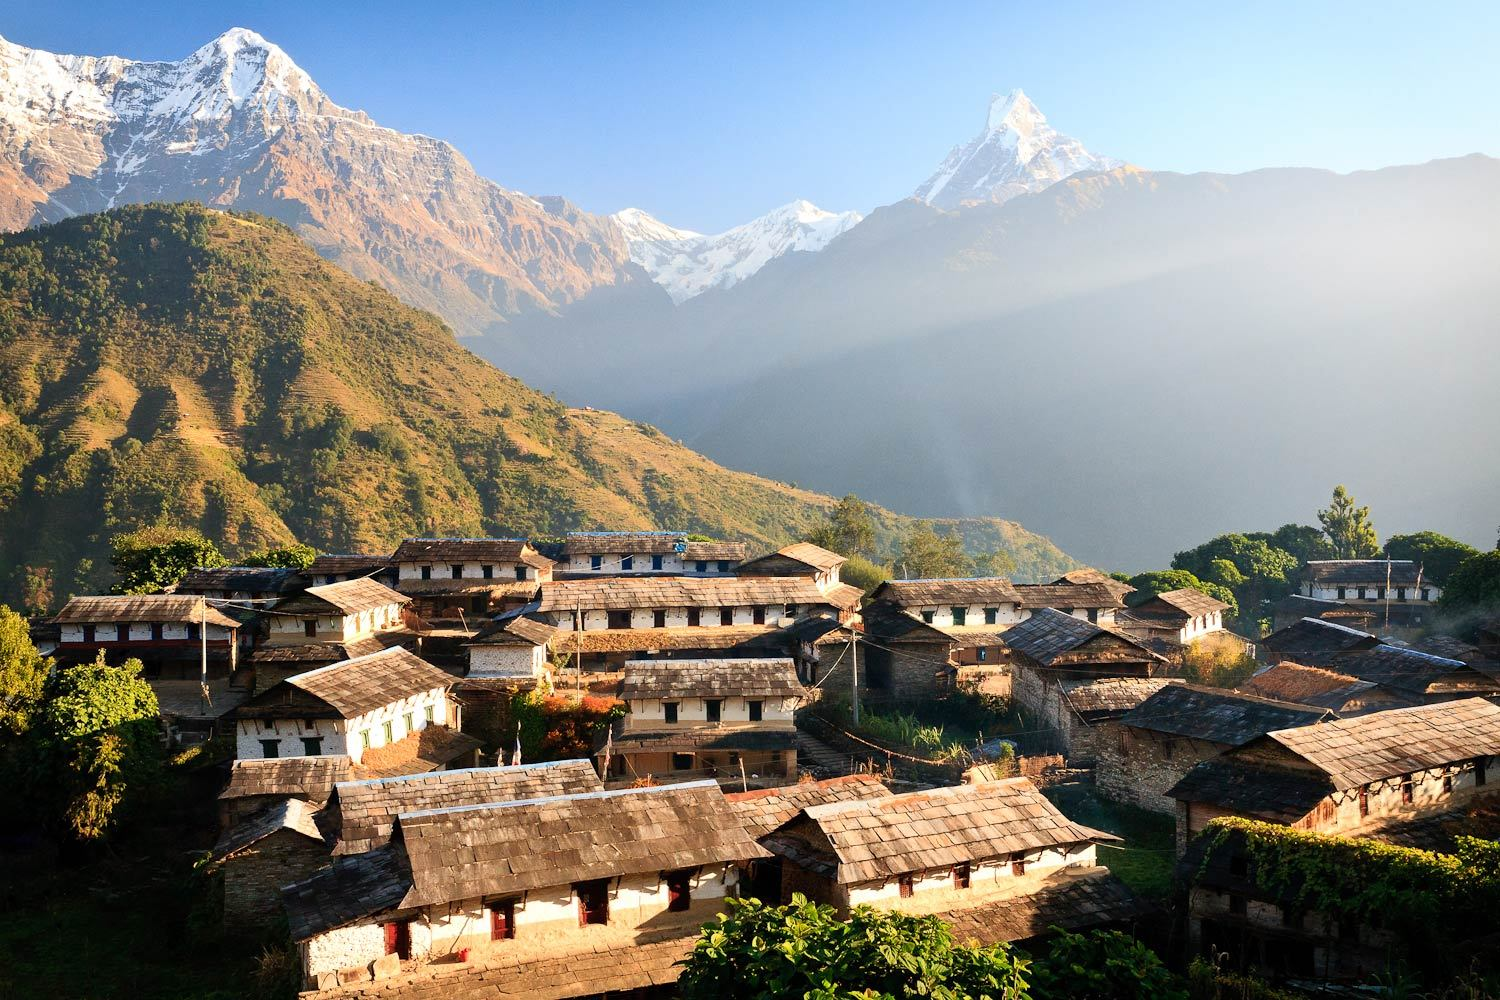 Mountains overlooking a village in  Nepal